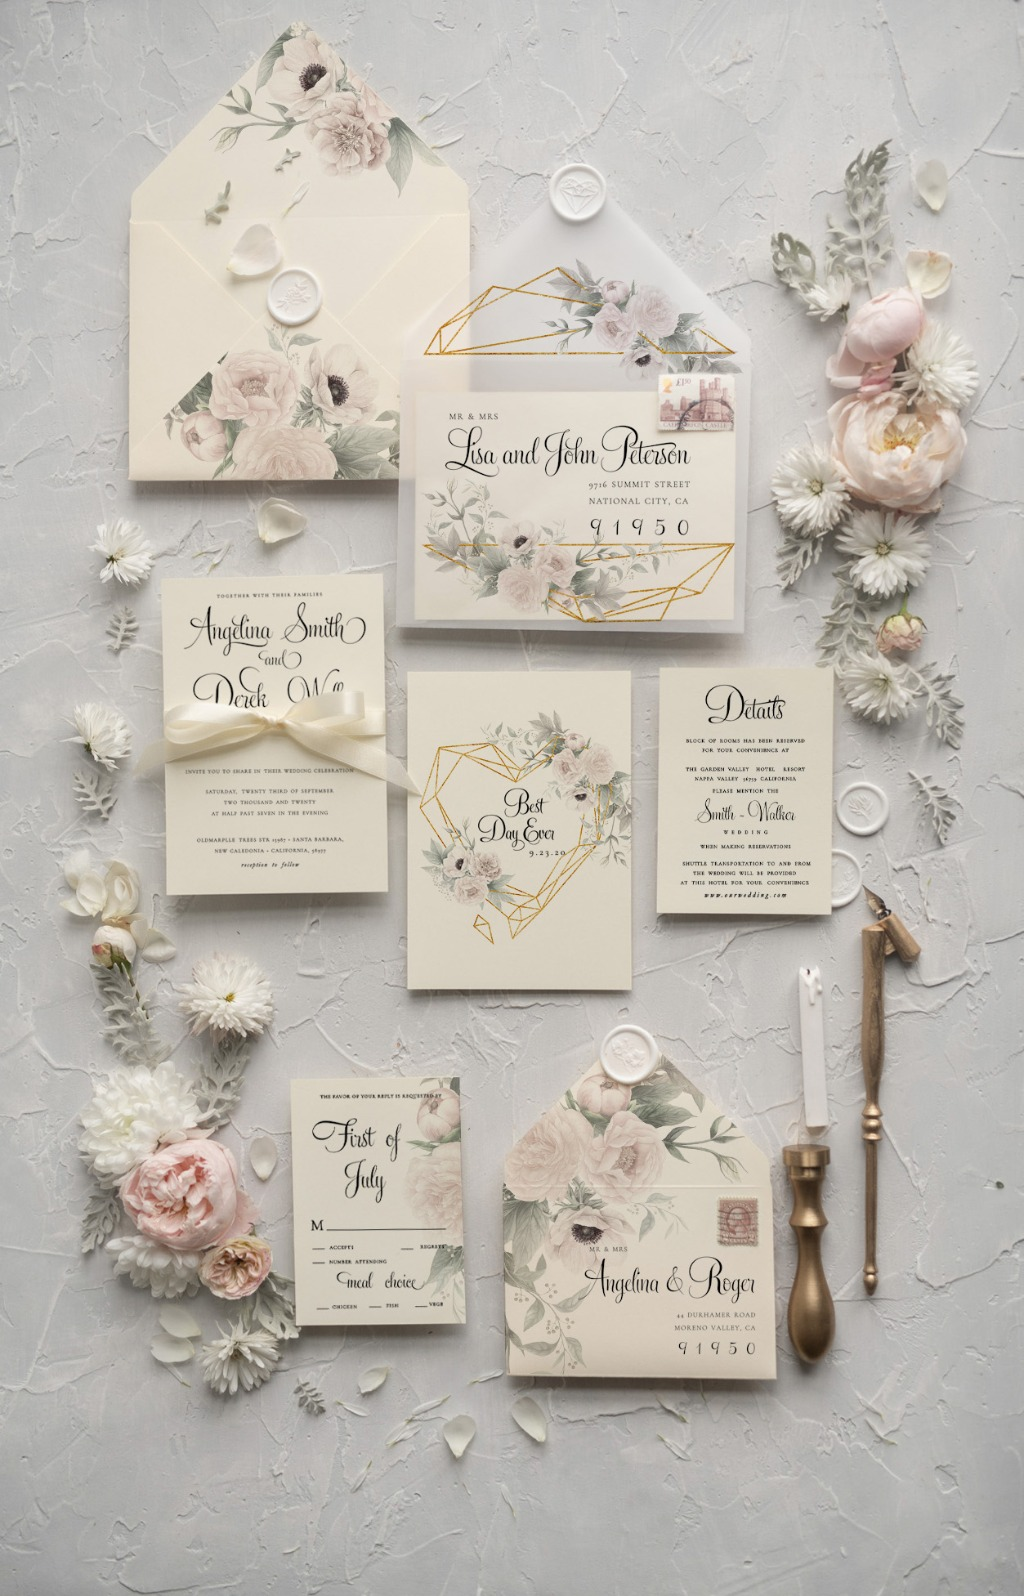 Wedding invitations with white flowers